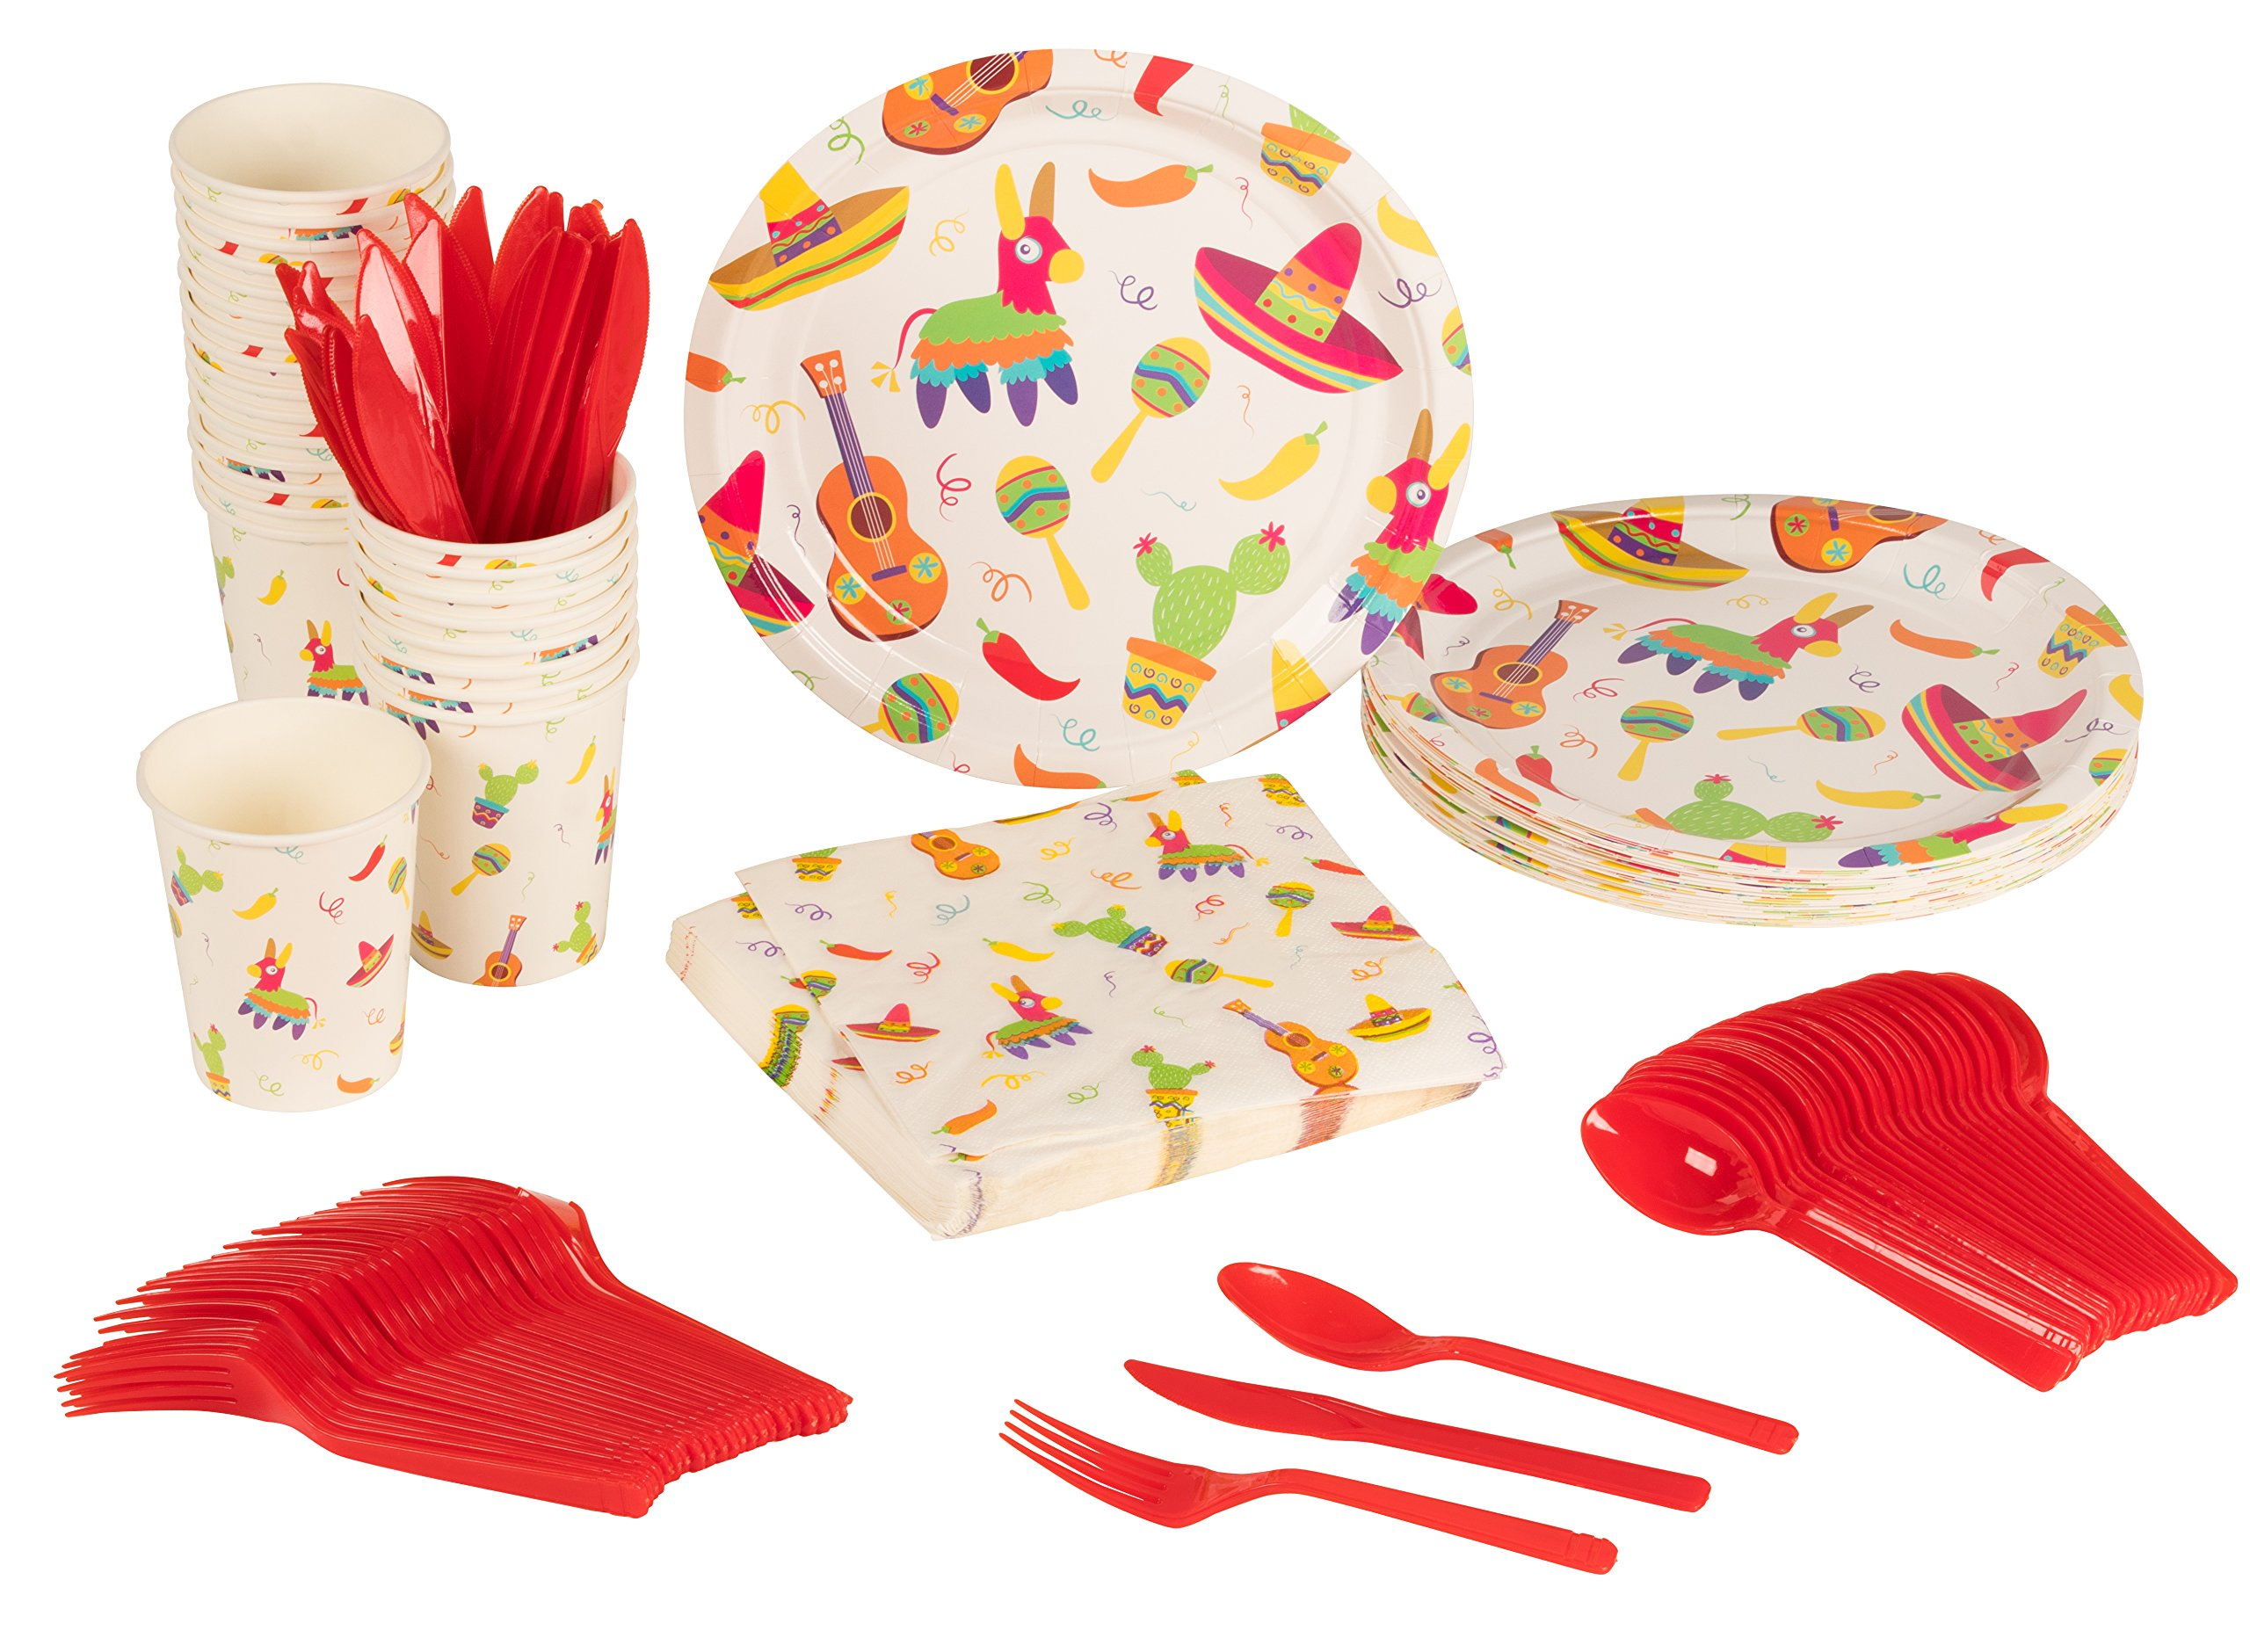 Disposable Dinnerware Set - Serves 24 - Mexican Fiesta Party Supplies for Birthdays, Cinco de Mayo - Includes Plastic Knives, Spoons, Forks, Paper Plates, Napkins, Cups by Blue Panda